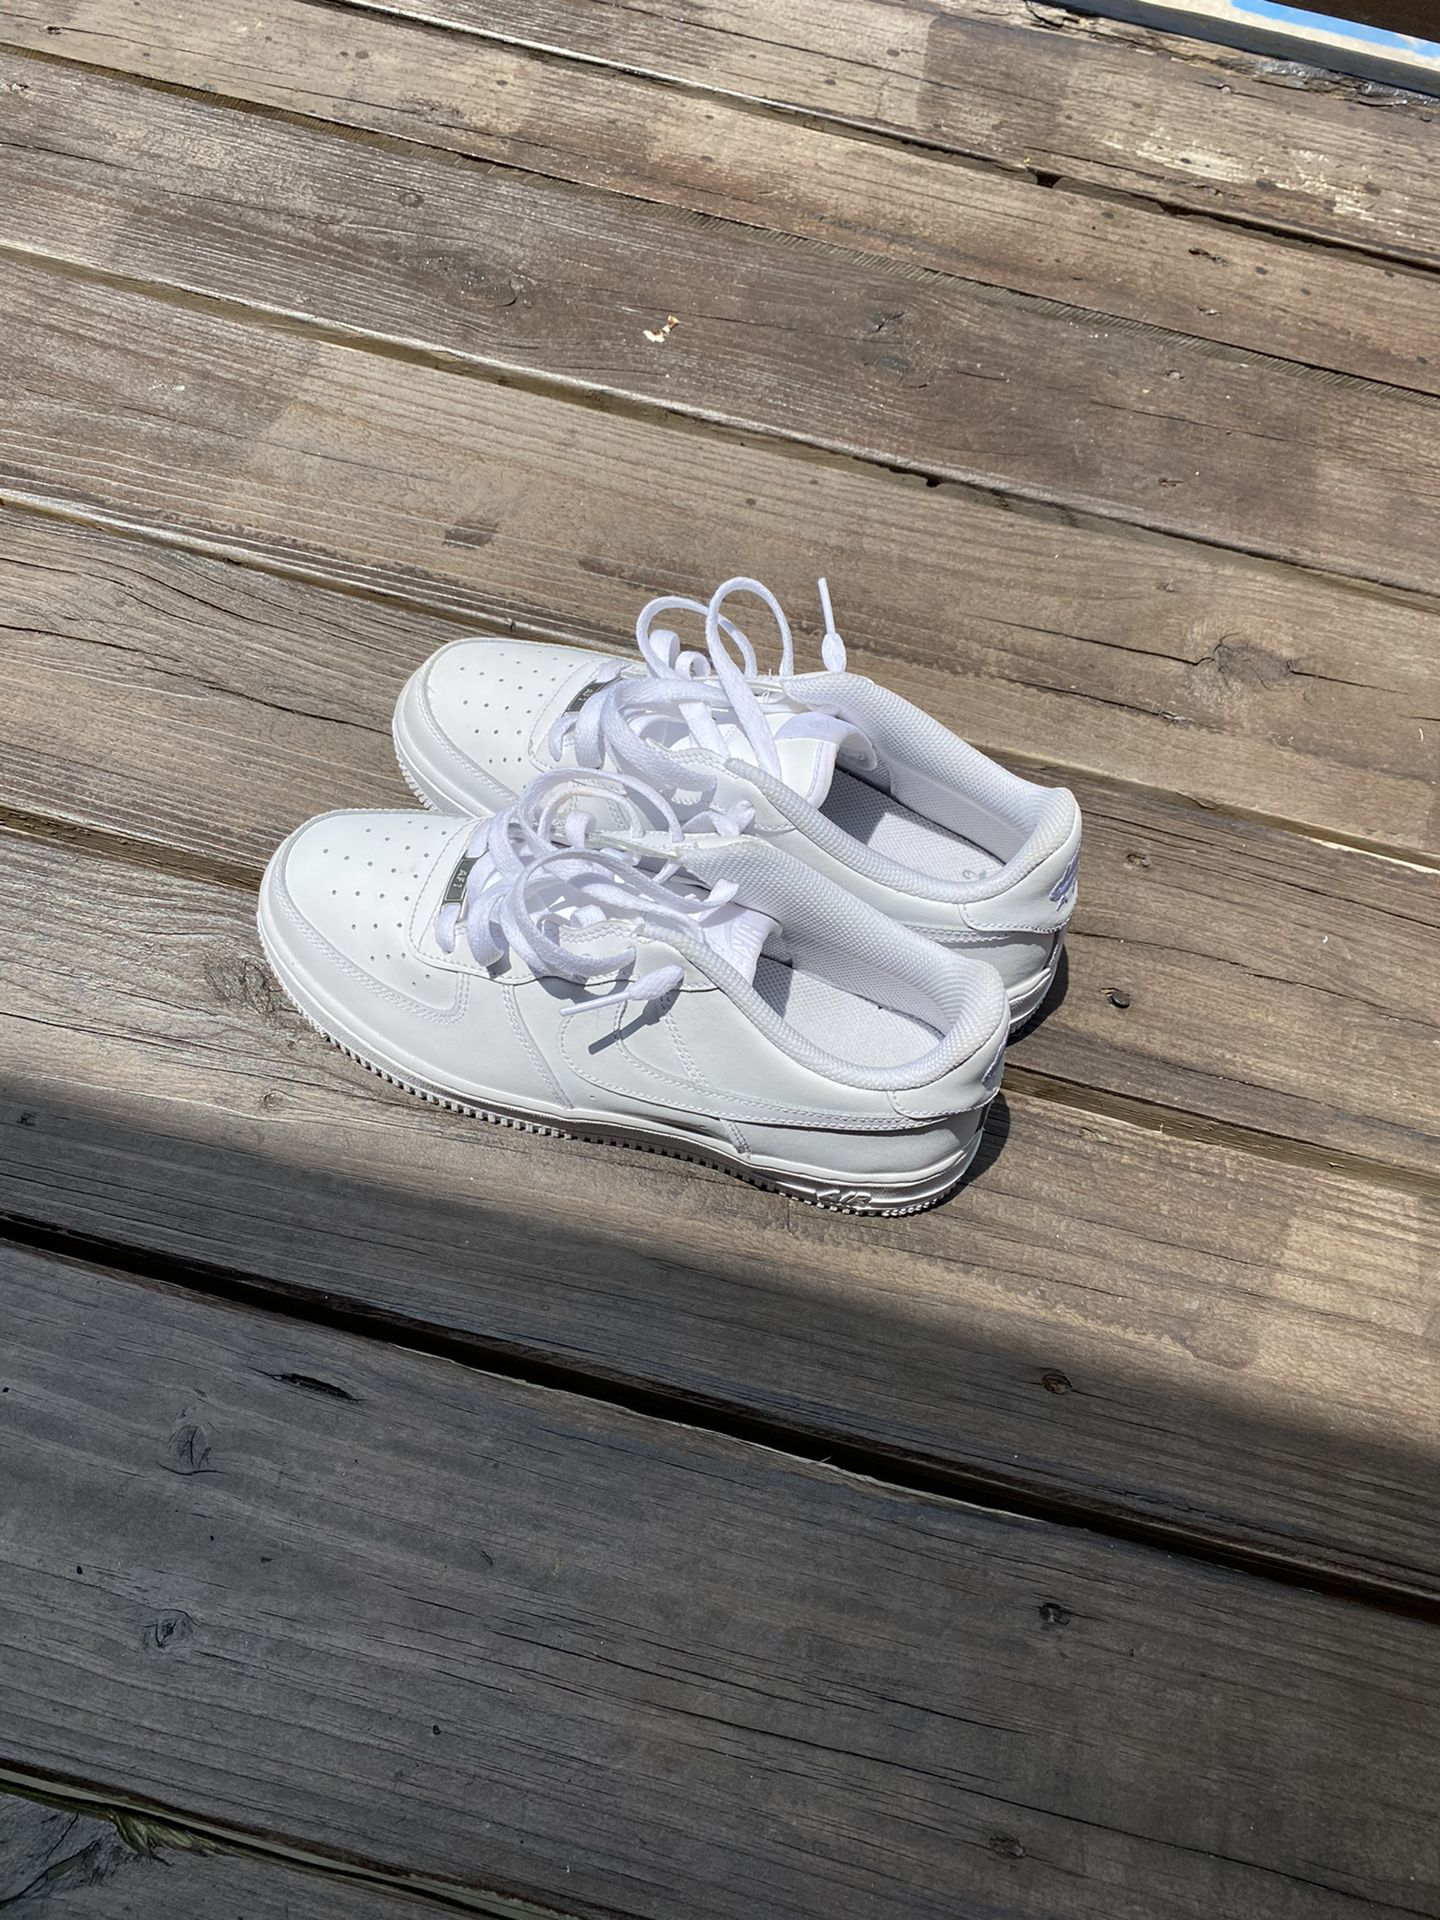 Airforce 1 Size 6M